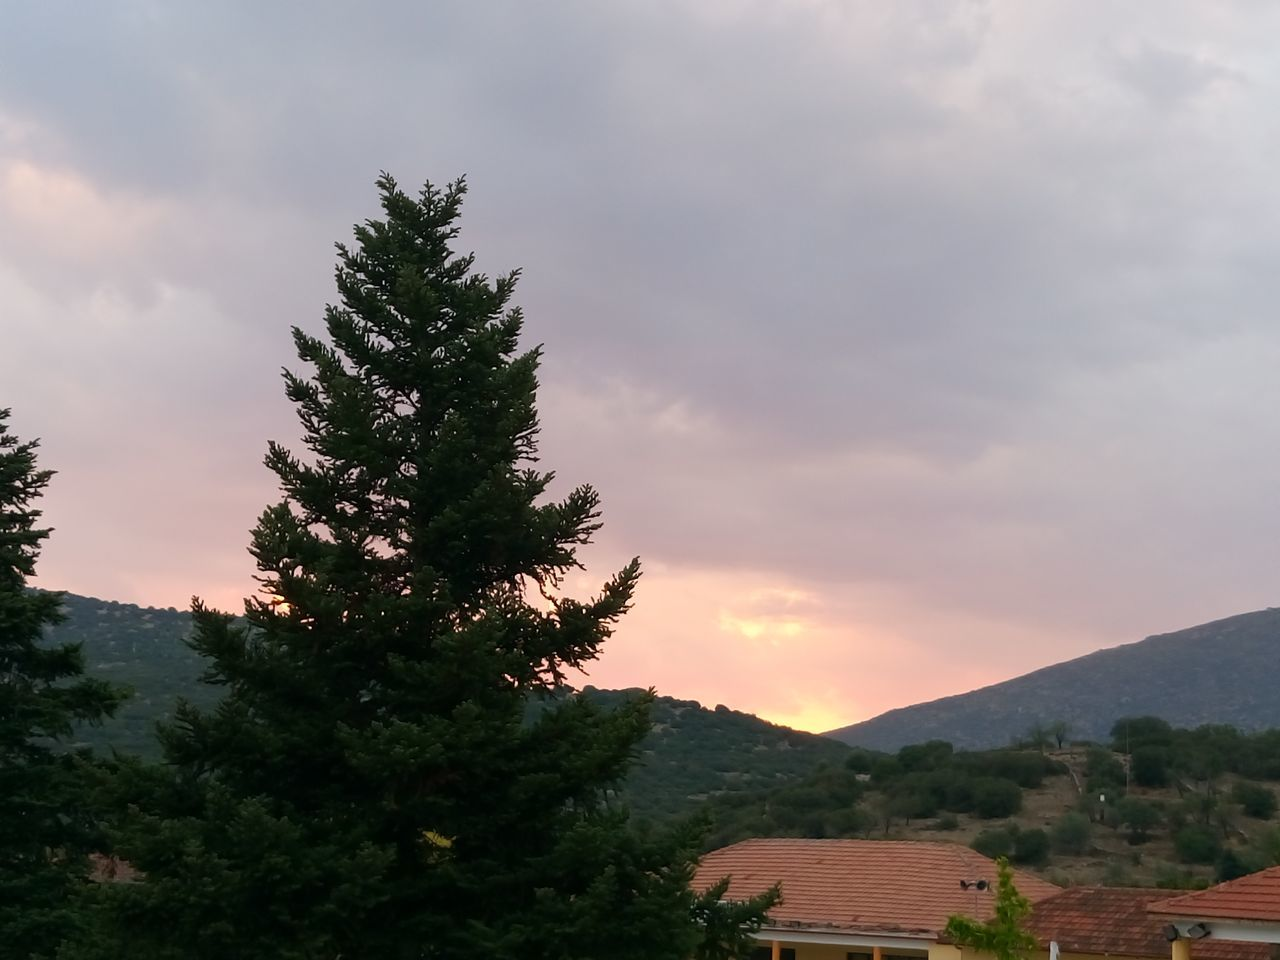 tree, sky, beauty in nature, cloud - sky, nature, scenics, sunset, no people, tranquil scene, mountain, outdoors, growth, tranquility, roof, day, architecture